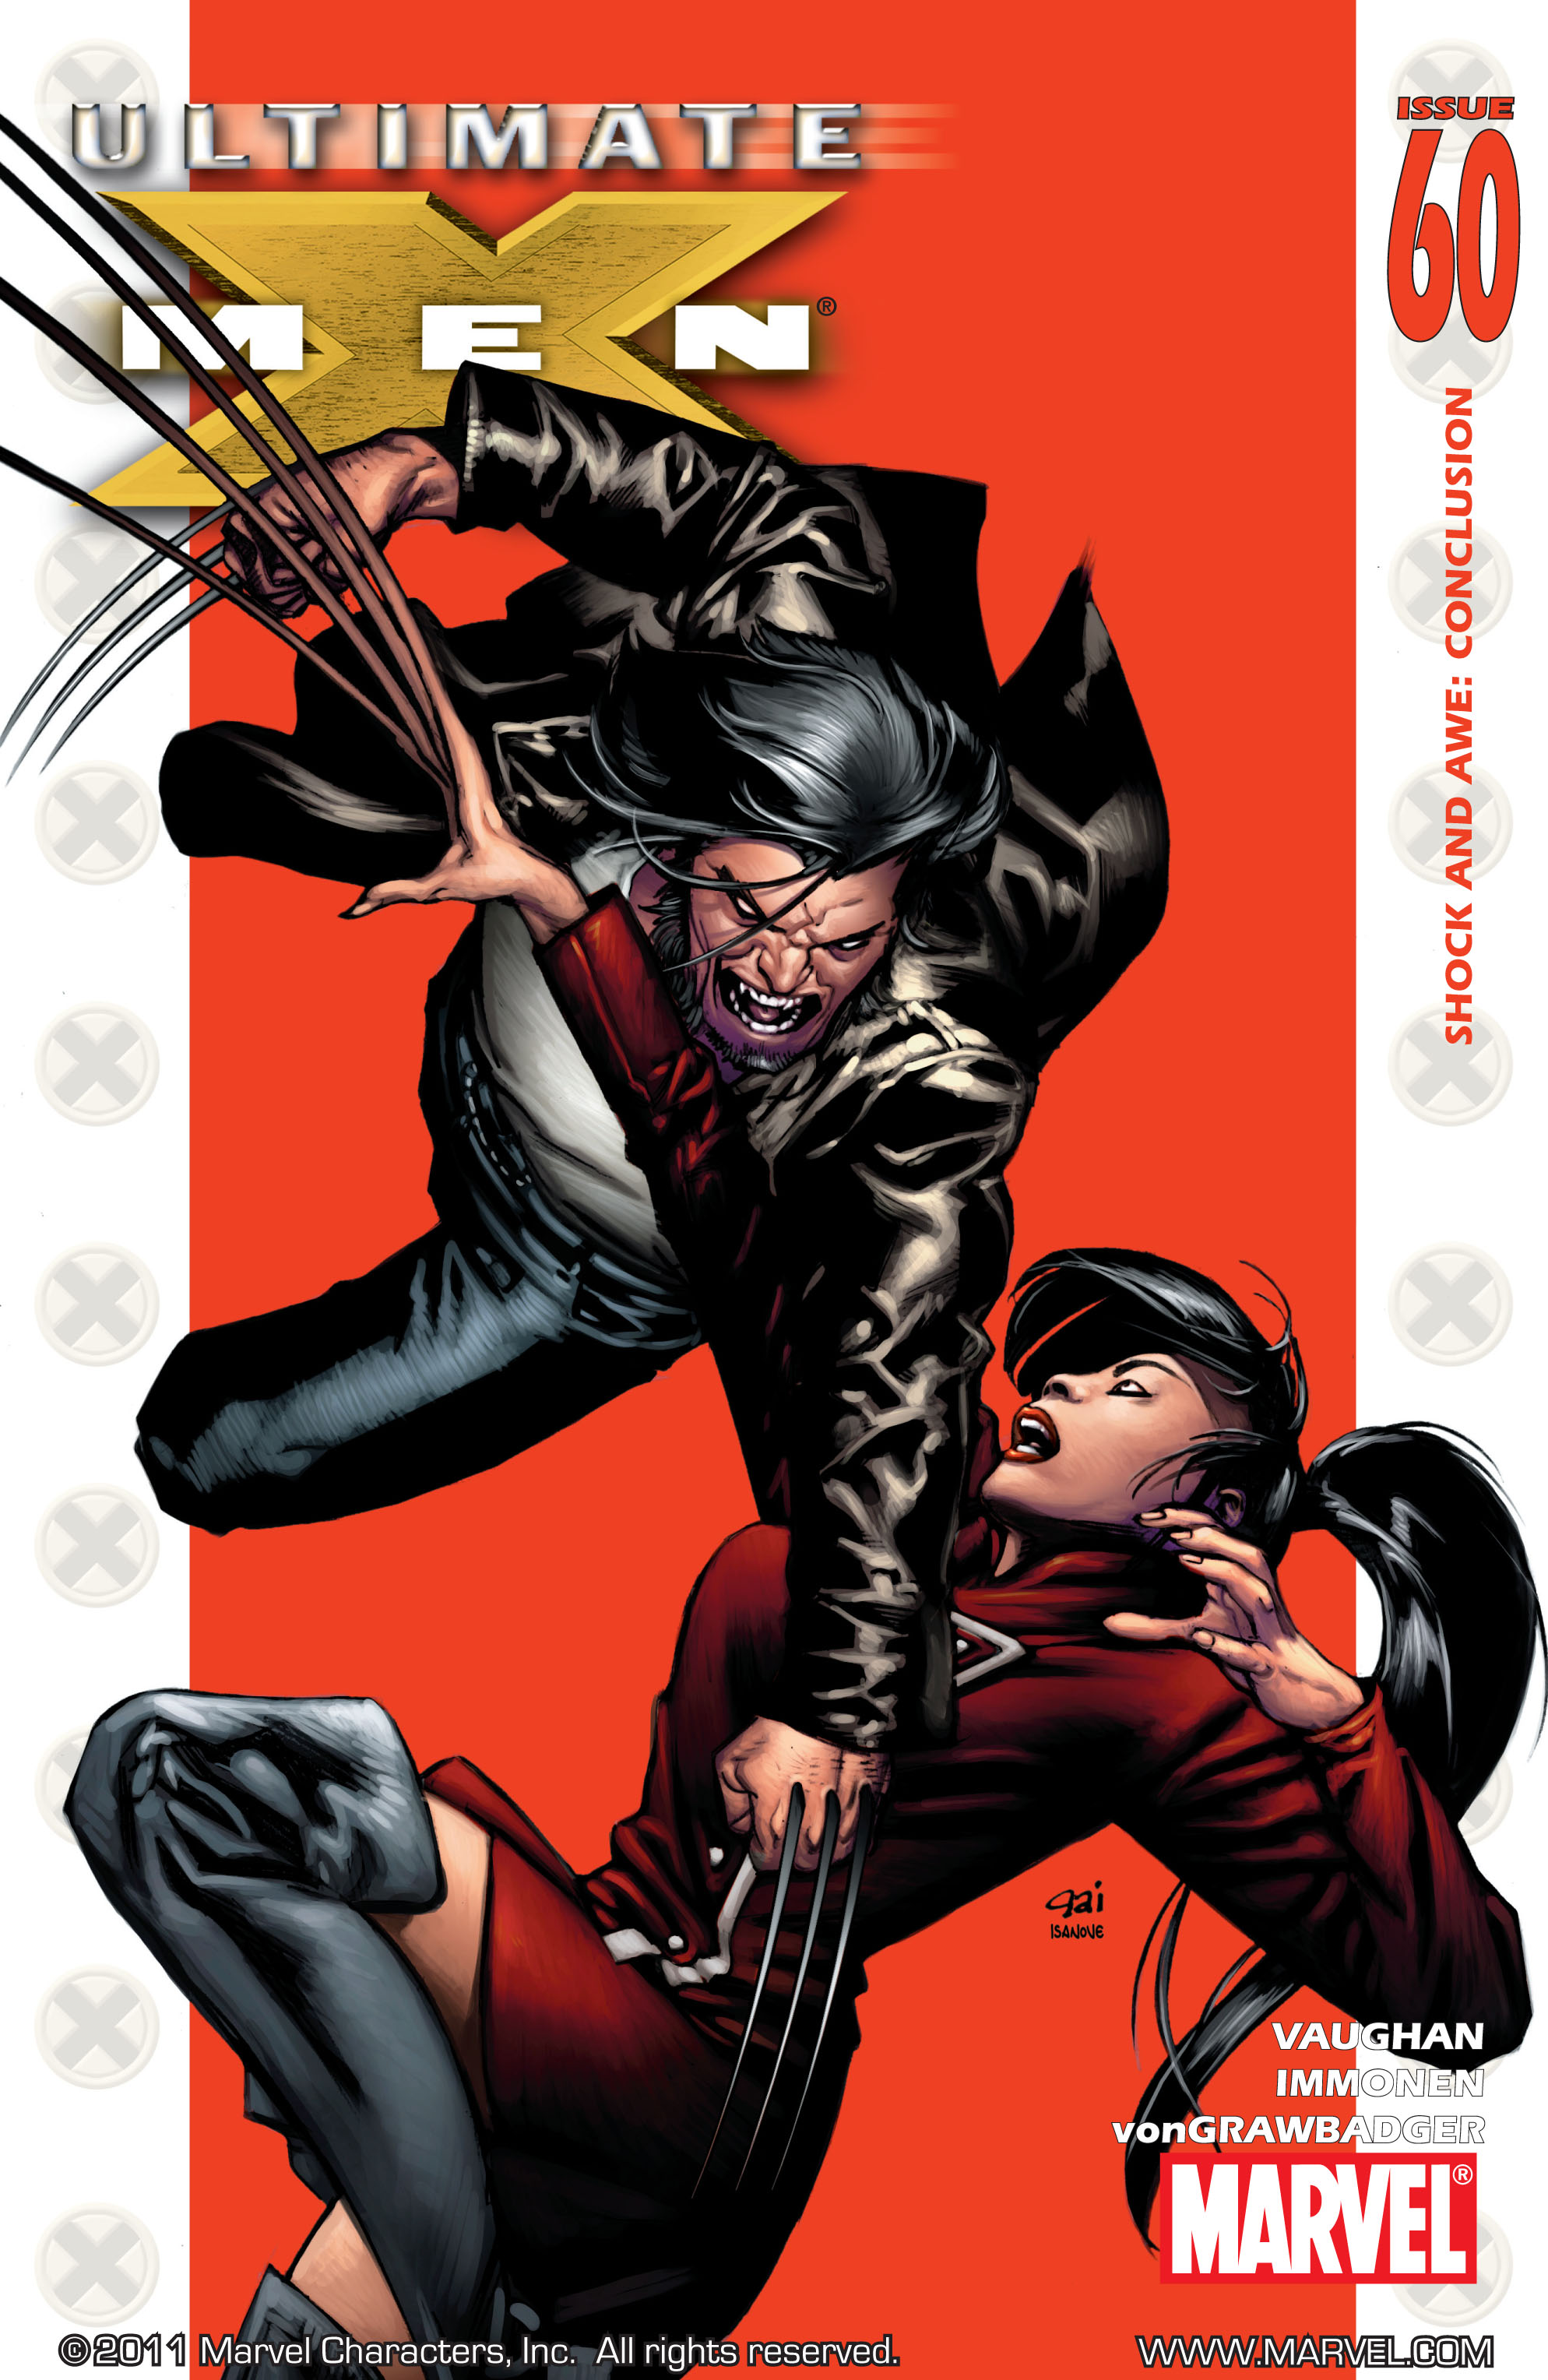 Read online Ultimate X-Men comic -  Issue #60 - 1